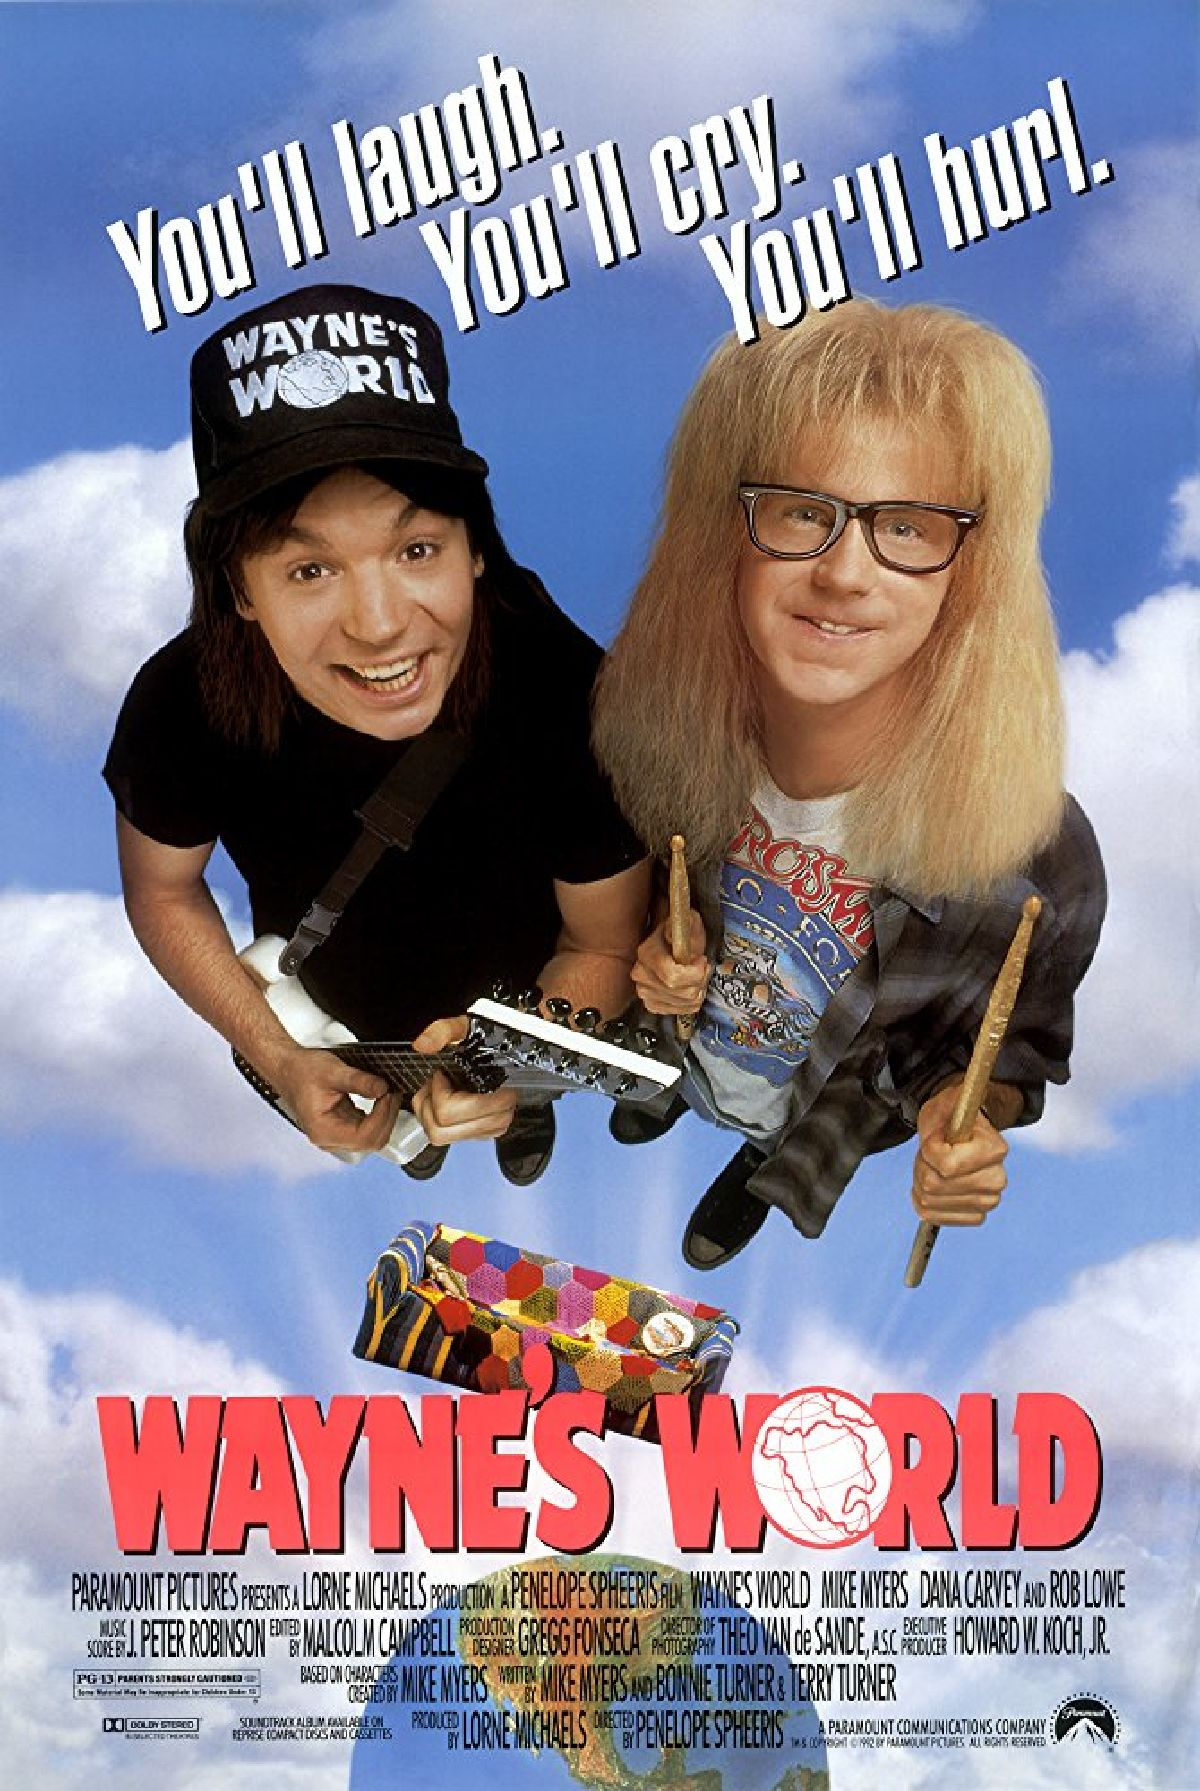 'Wayne's World' movie poster